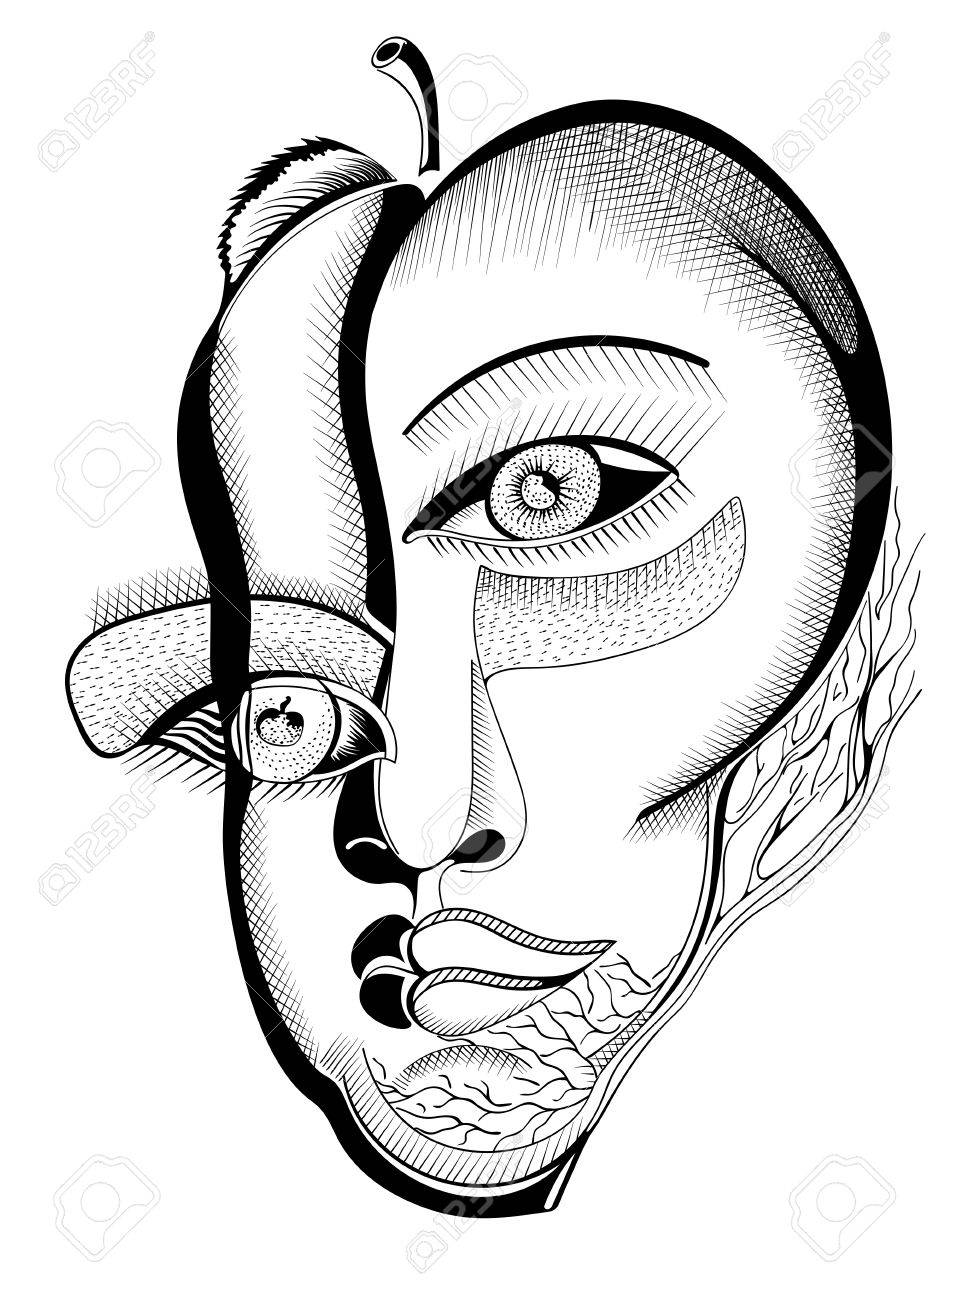 953x1300 Surreal Hand Drawing Faces, Abstract Template With Black Outlines